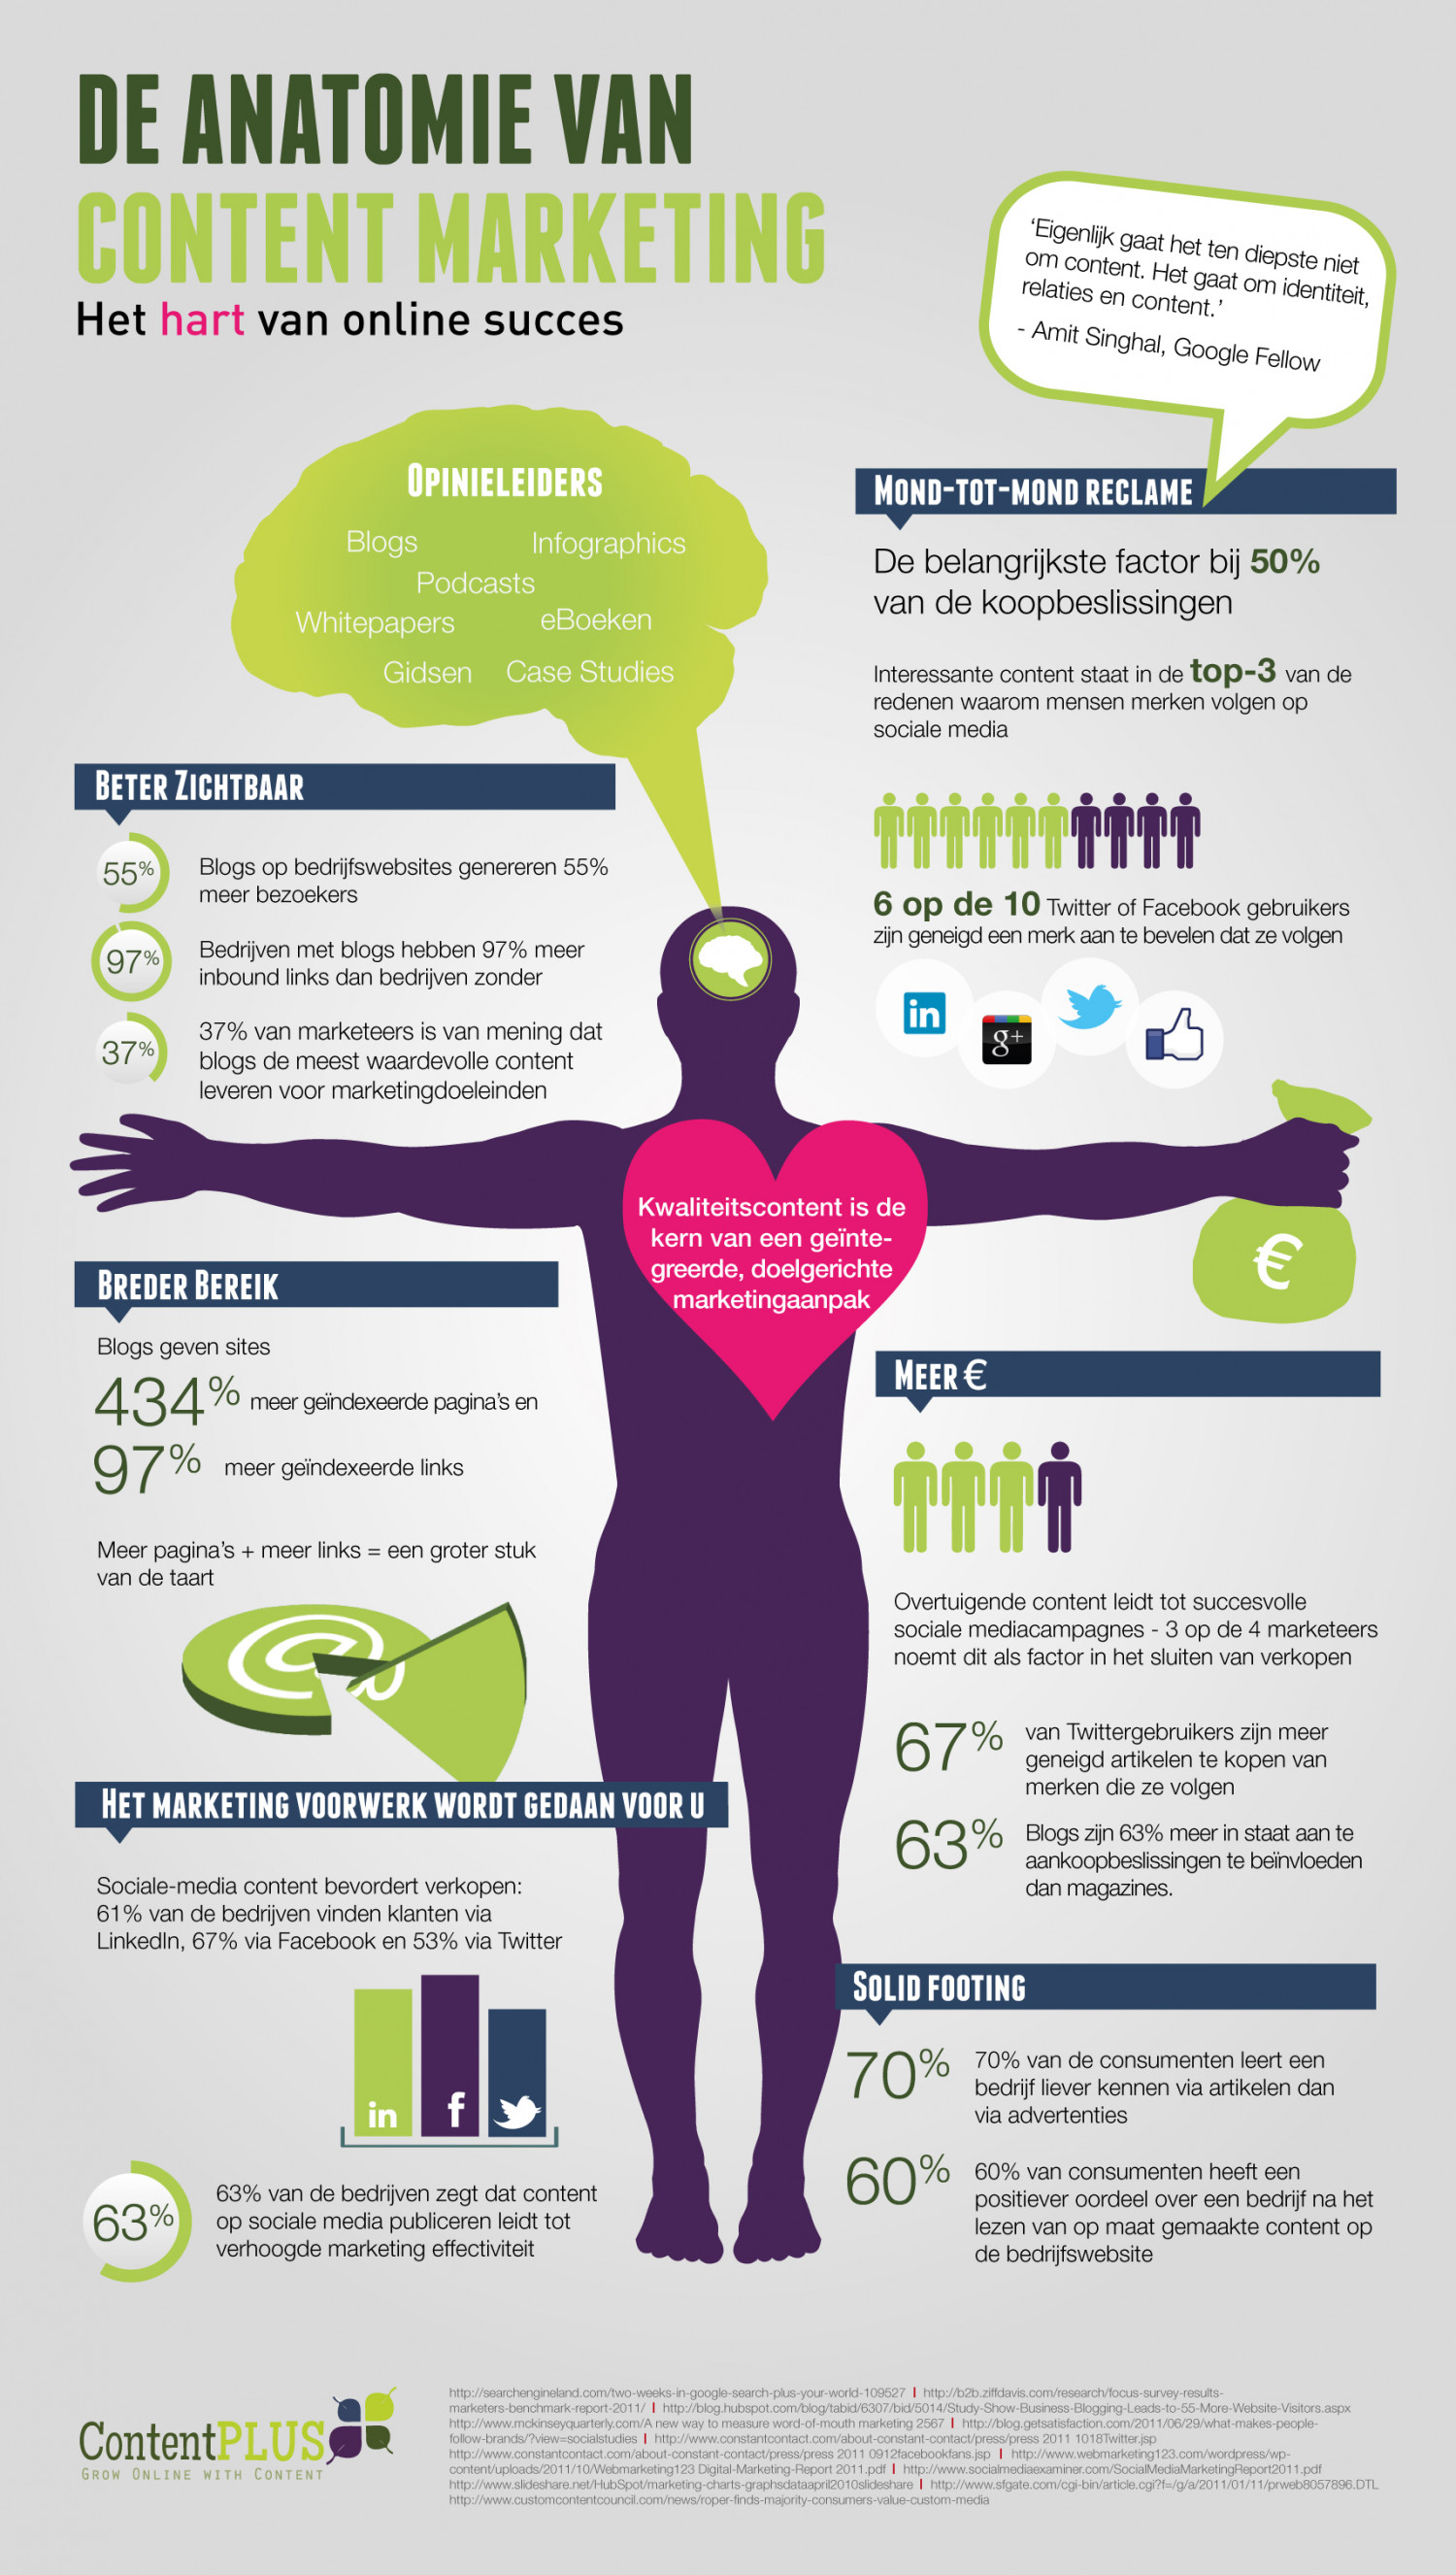 The Anatomy of Content Marketing [Dutch] Infographic